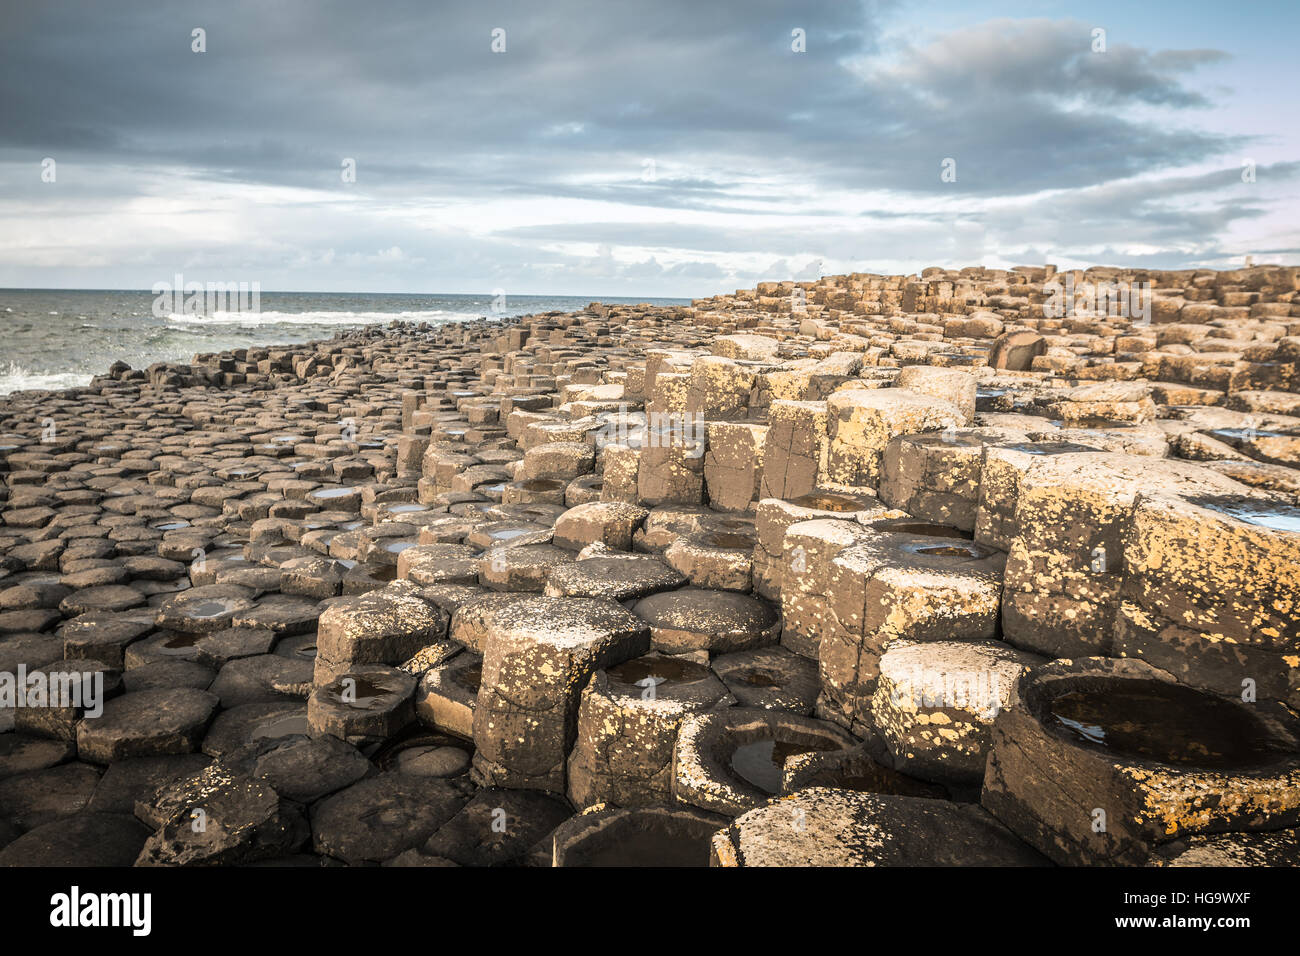 The Giants causeway in Northern Ireland - Stock Image